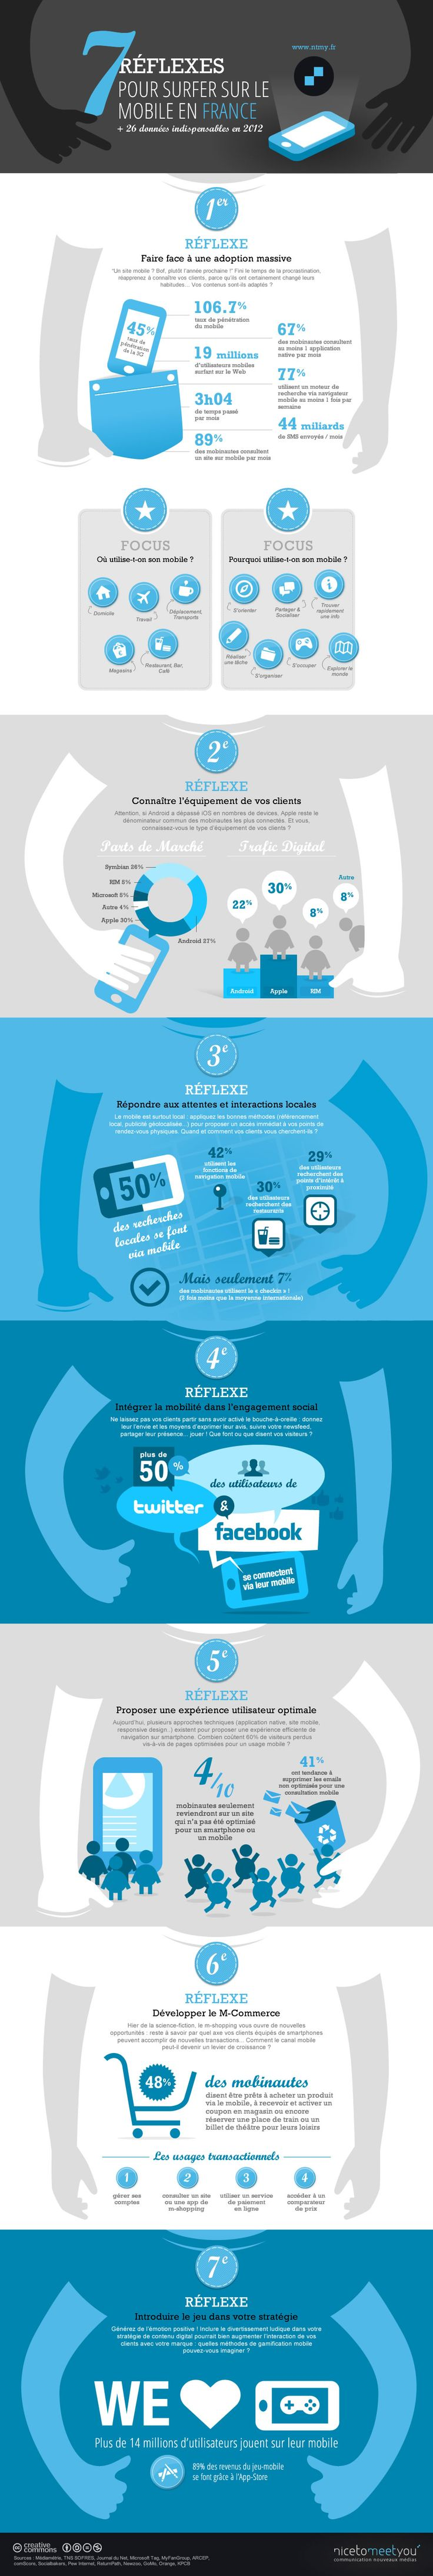 infographie-mobile-france-2012-nicetomeetyou